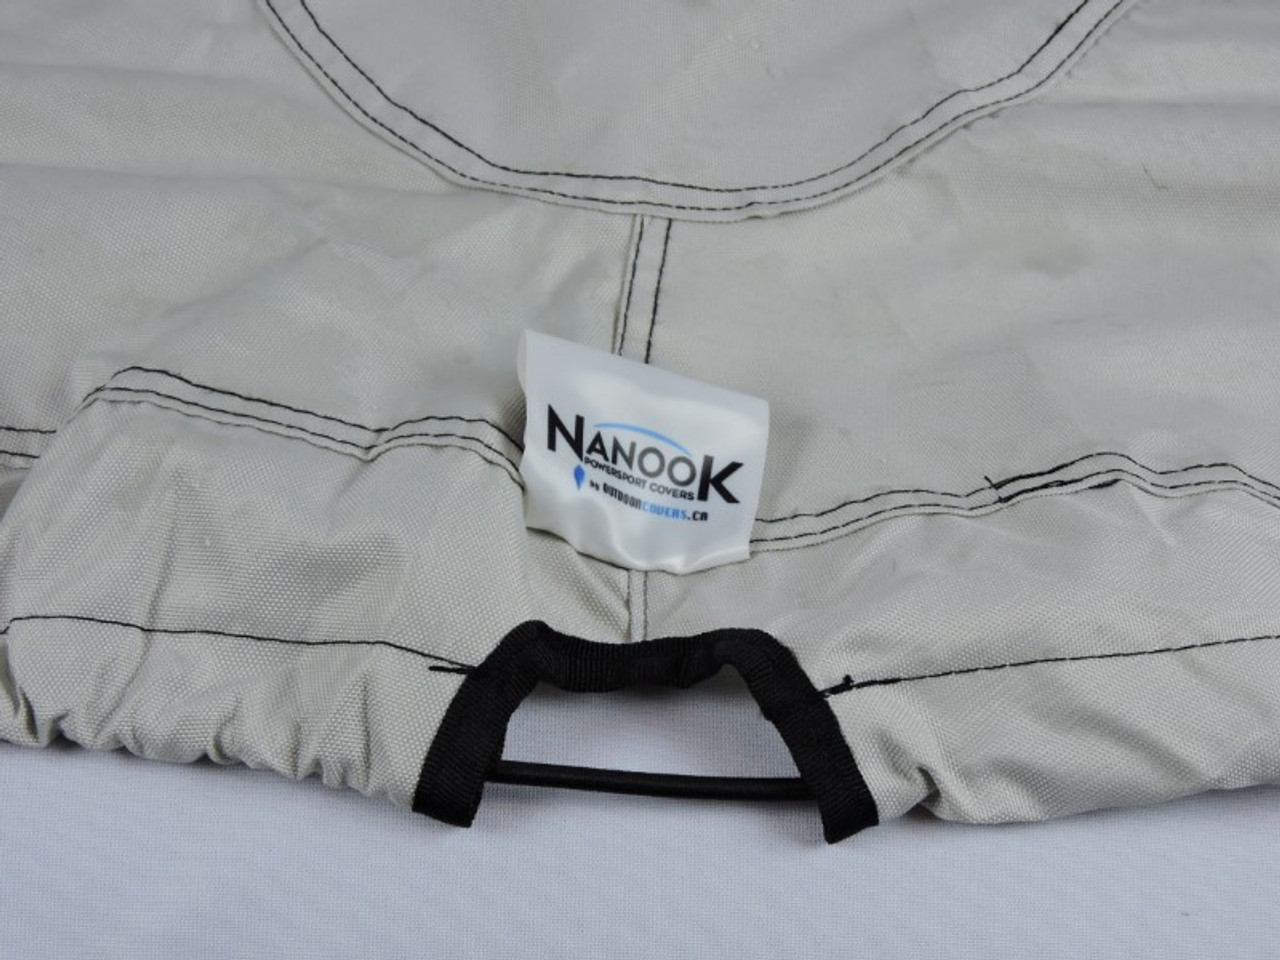 Nanook heavy duty trailering cover nose and tail anchor ring pass through